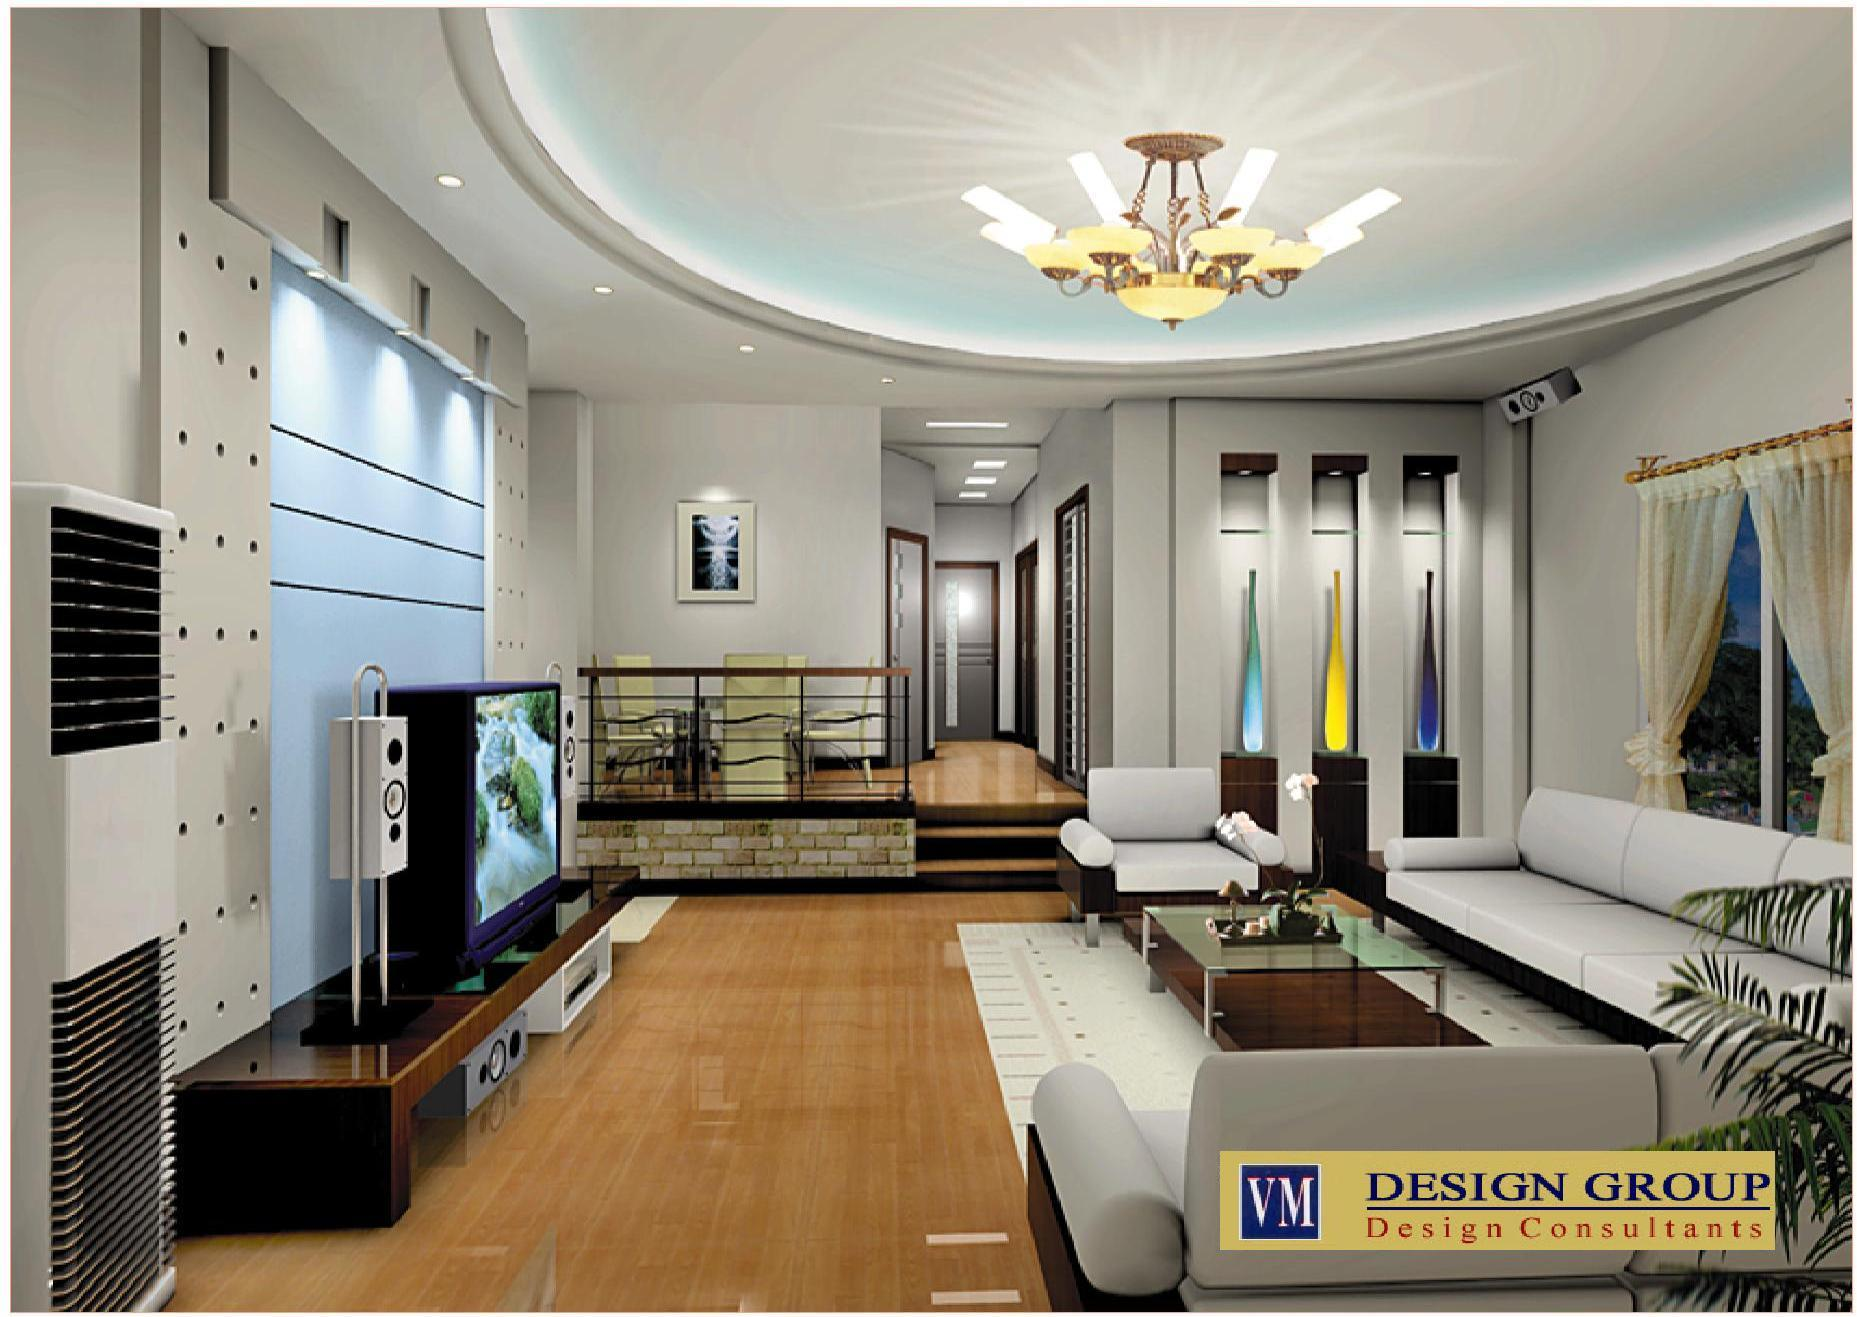 Attractive Interior_Design_Delhi11857x1317 254 KB. BACHELOR OF INTERIOR DESIGN